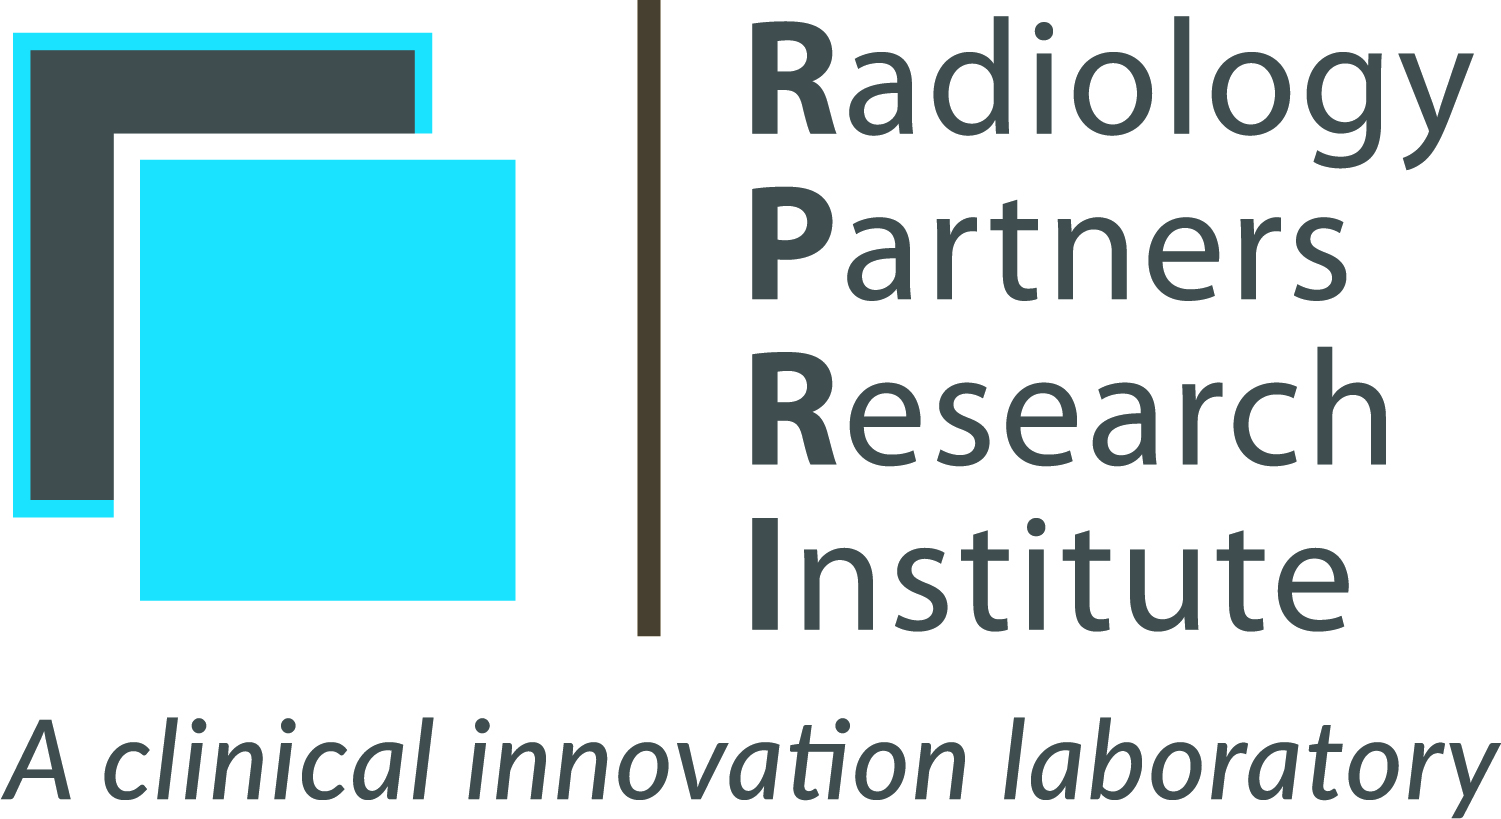 Radiology Partners Research Institute